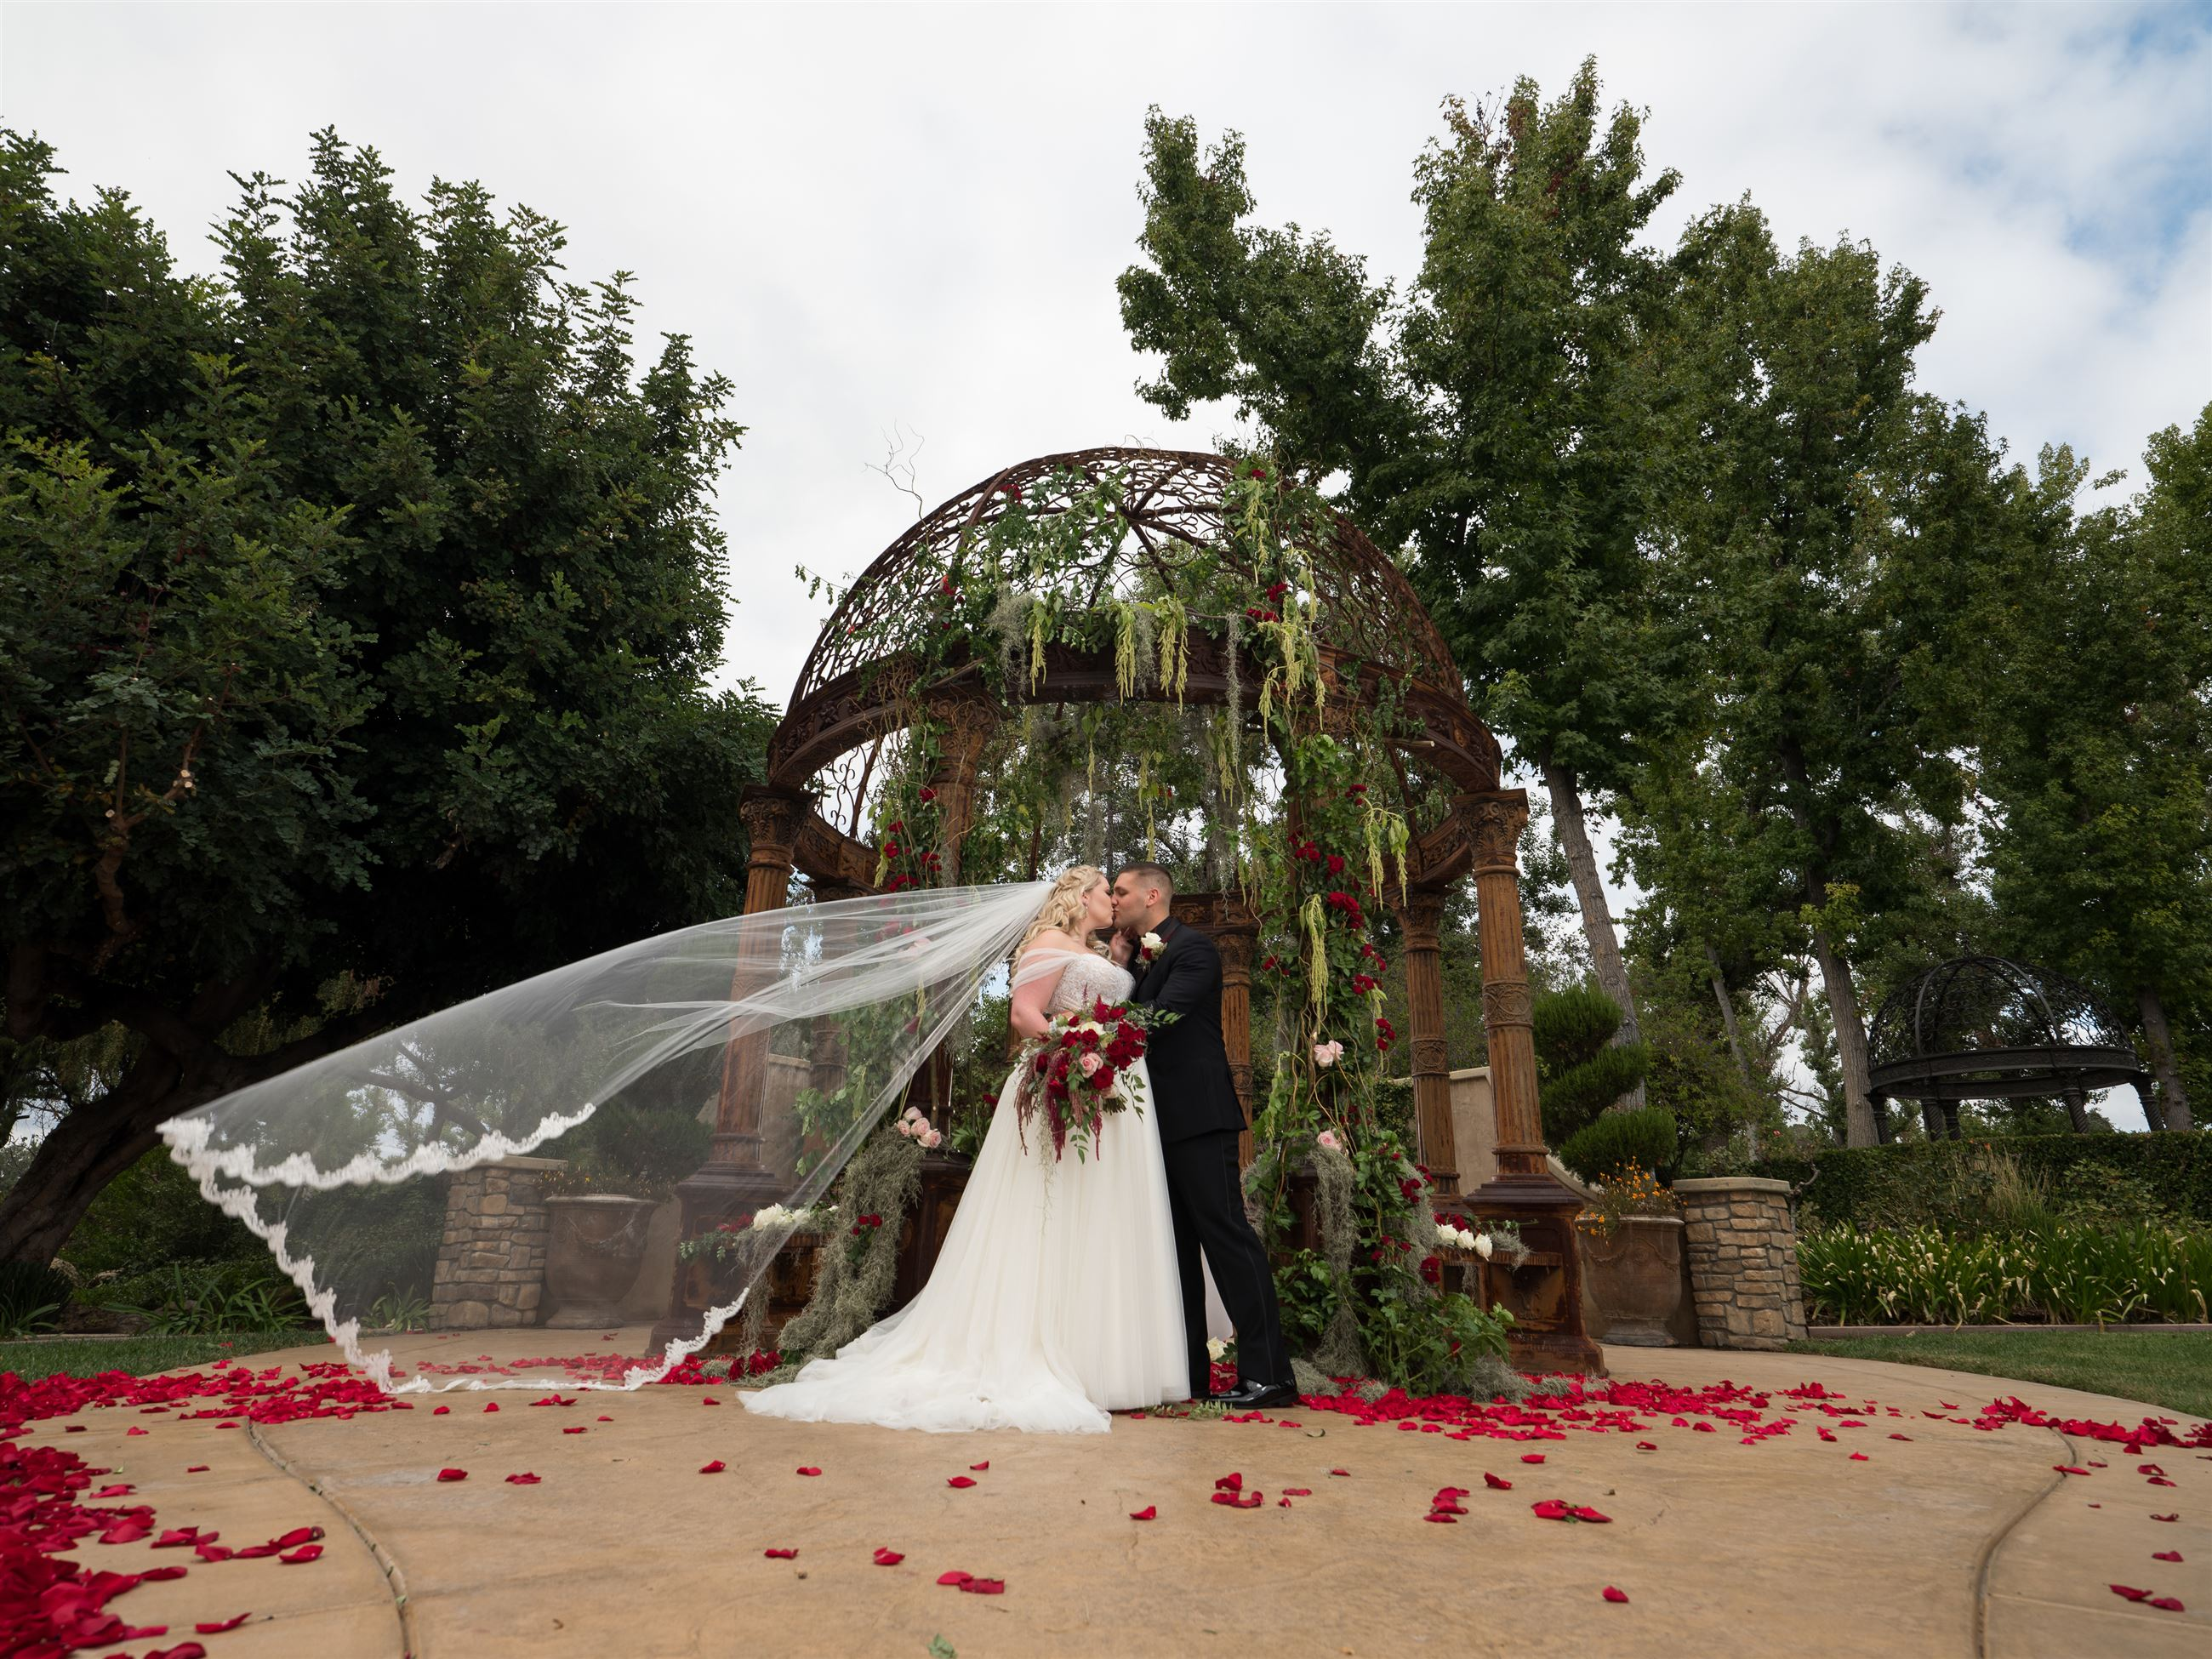 Lili Bride: Romance In The Garden Image